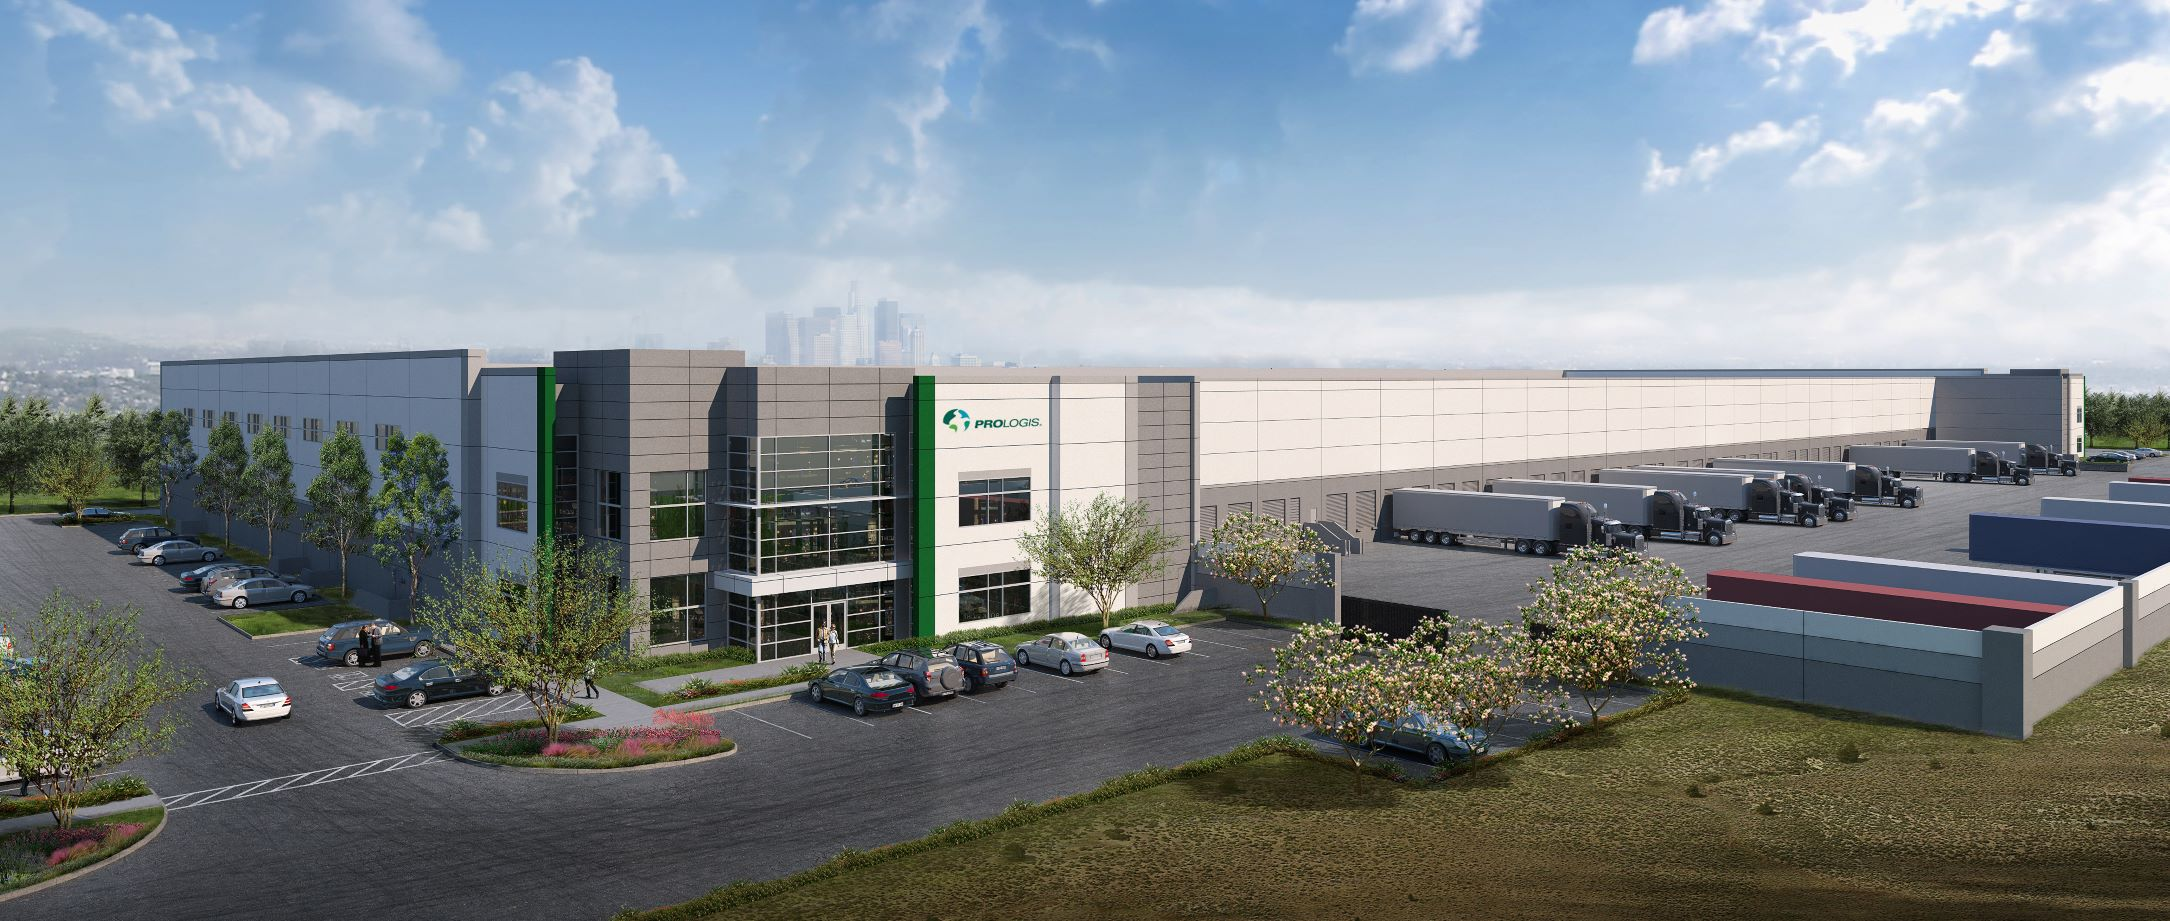 Construction is underway on the two-building Prologis Vernon Business Center, south of downtown Los Angeles.  Rendering: Newmark Knight Frank